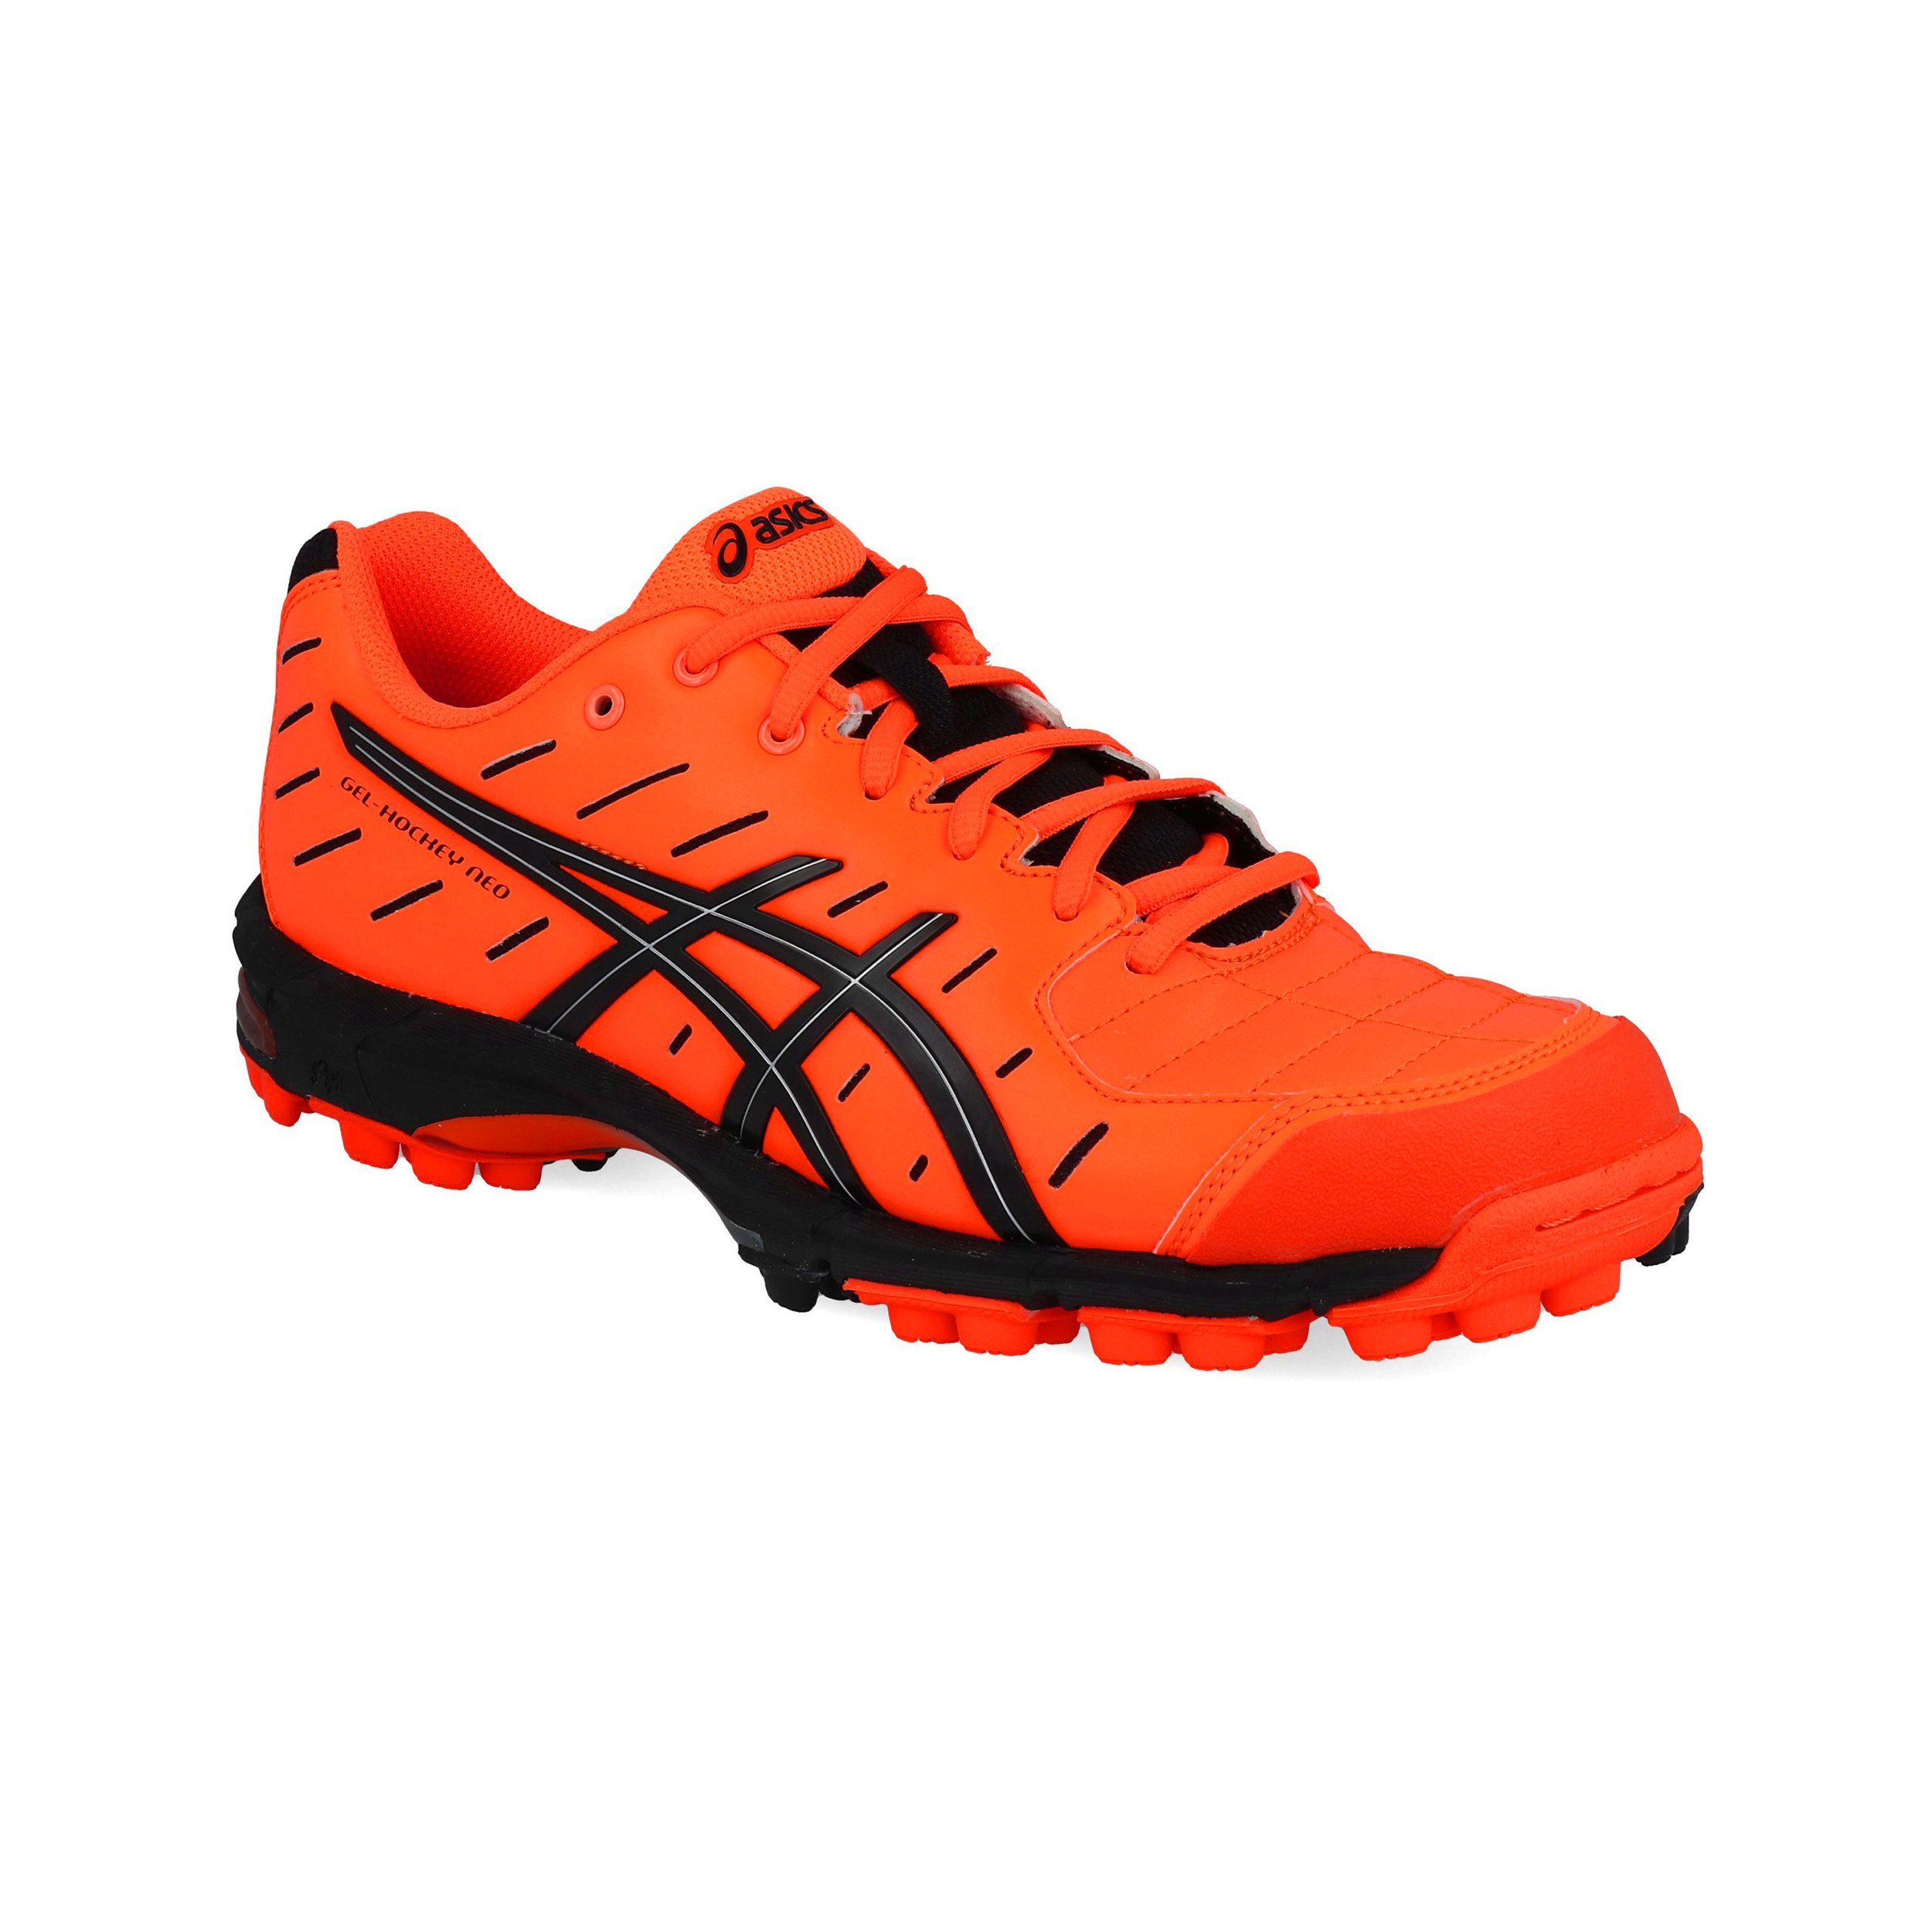 Details zu Asics Herren Gel Hockey Neo 3 Hockeyschuhe Hockey Turnschuhe Pitch Field Orange